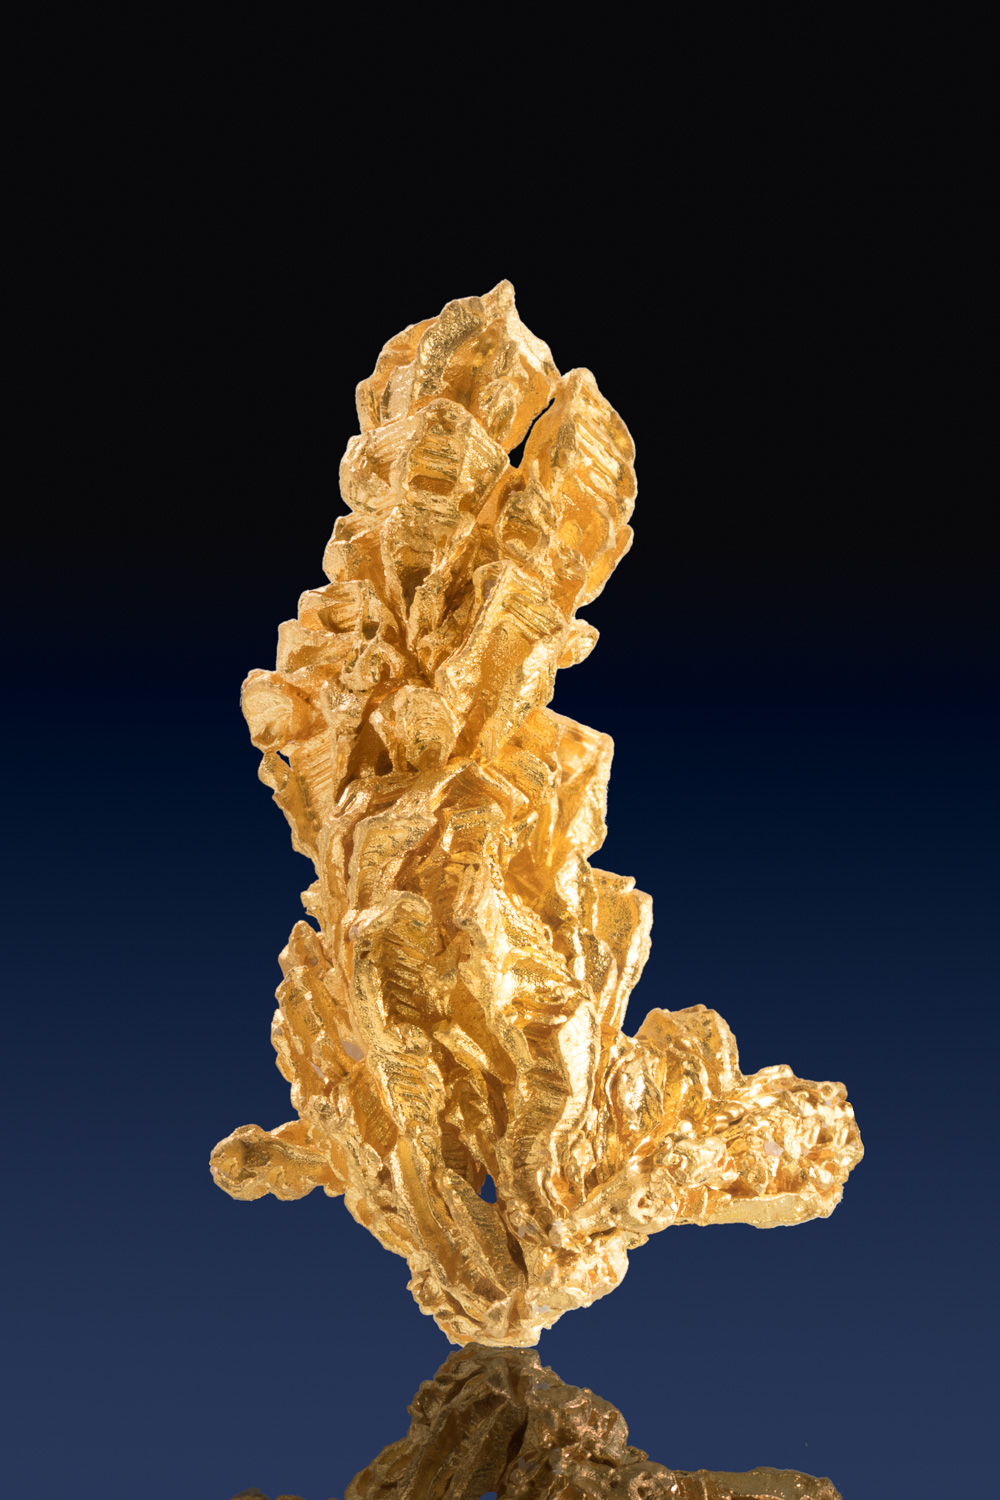 Exceptionally Pure - Natural Gold Crystal from Brazil